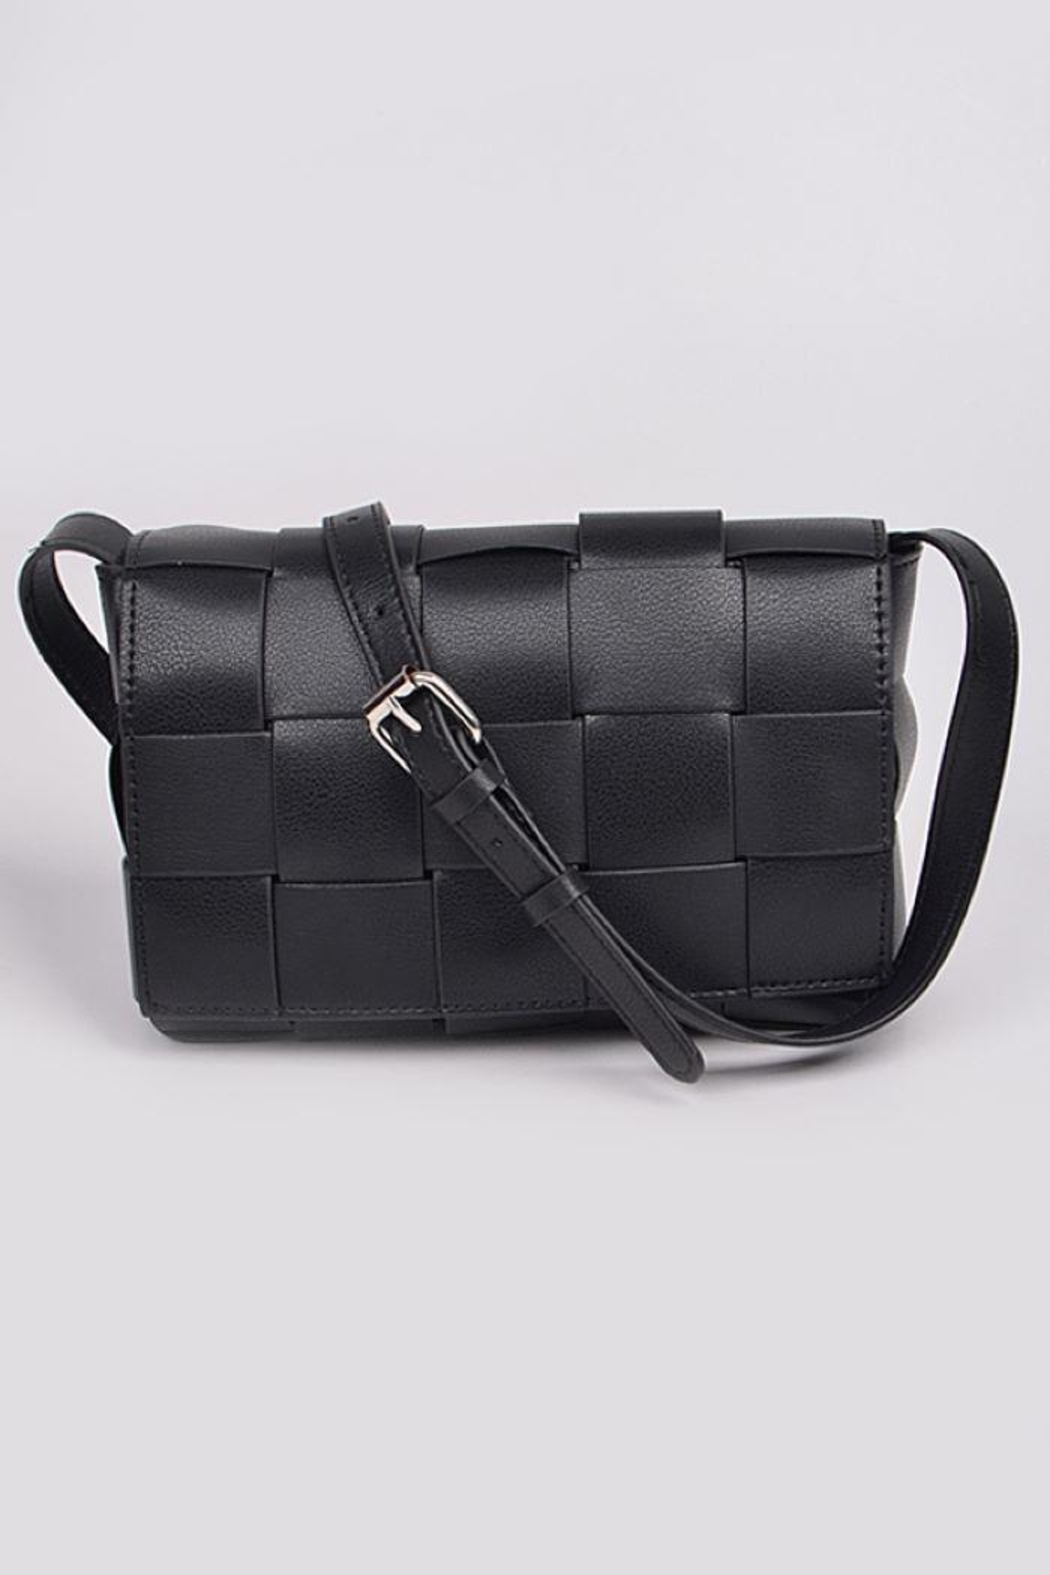 H&D Accessories Monotone Weaving Leather Clutch - Front Cropped Image